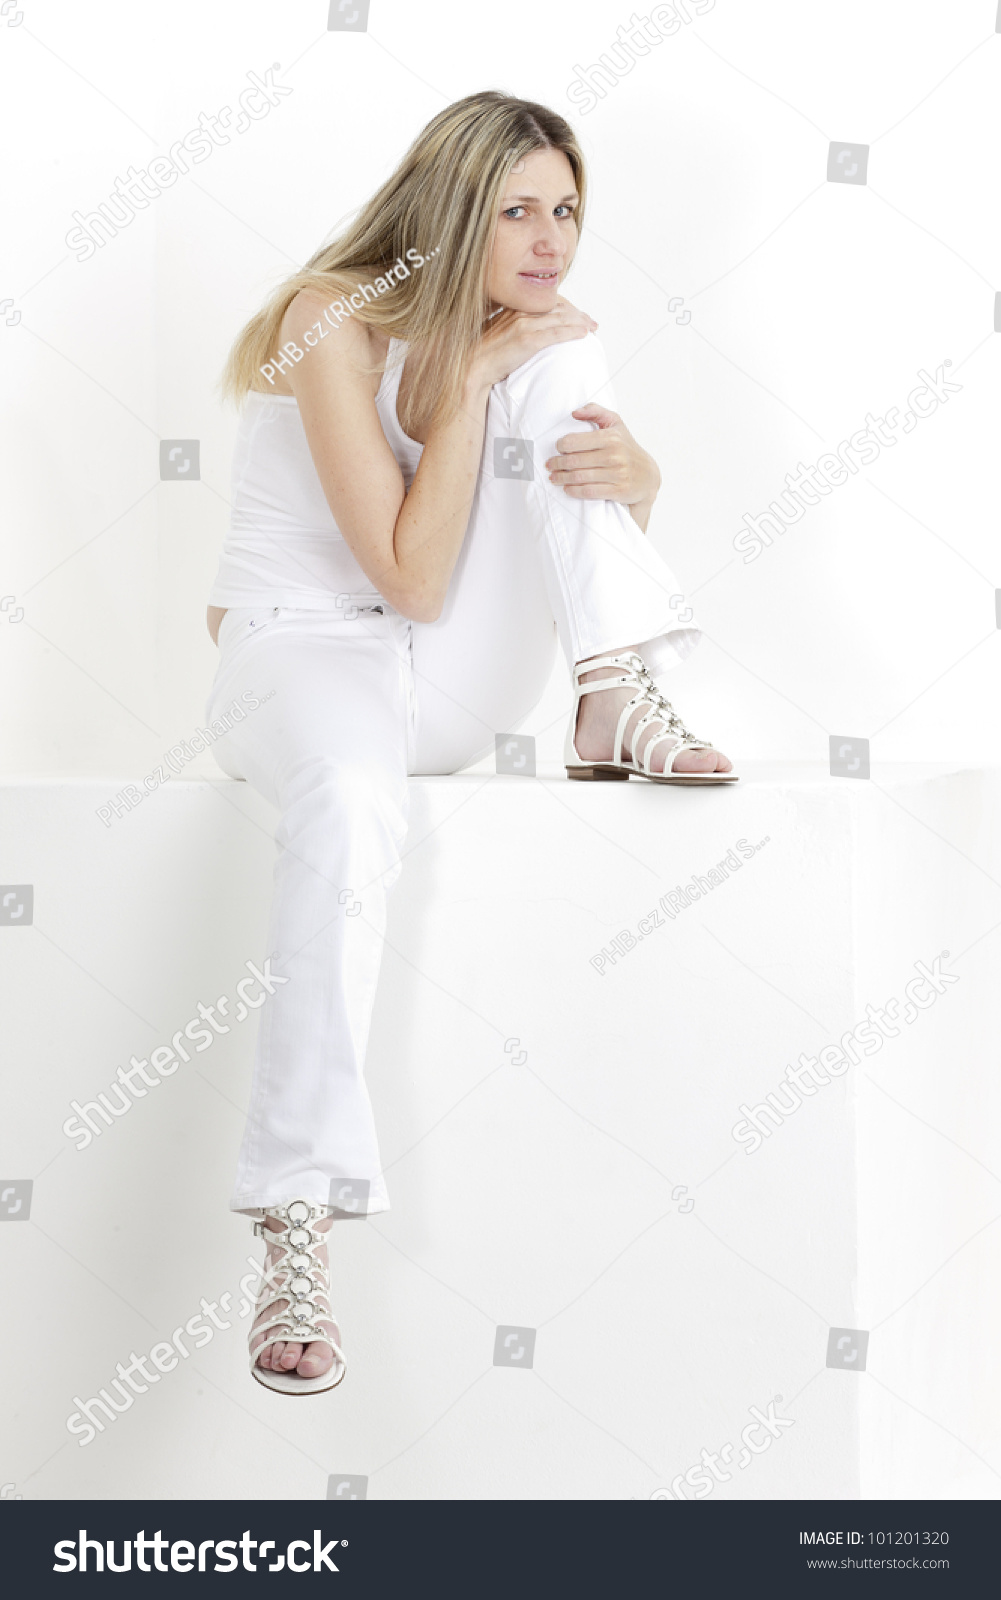 72e3a9c6b Sitting Woman Wearing White Clothes Sandals Stock Photo (Edit Now ...